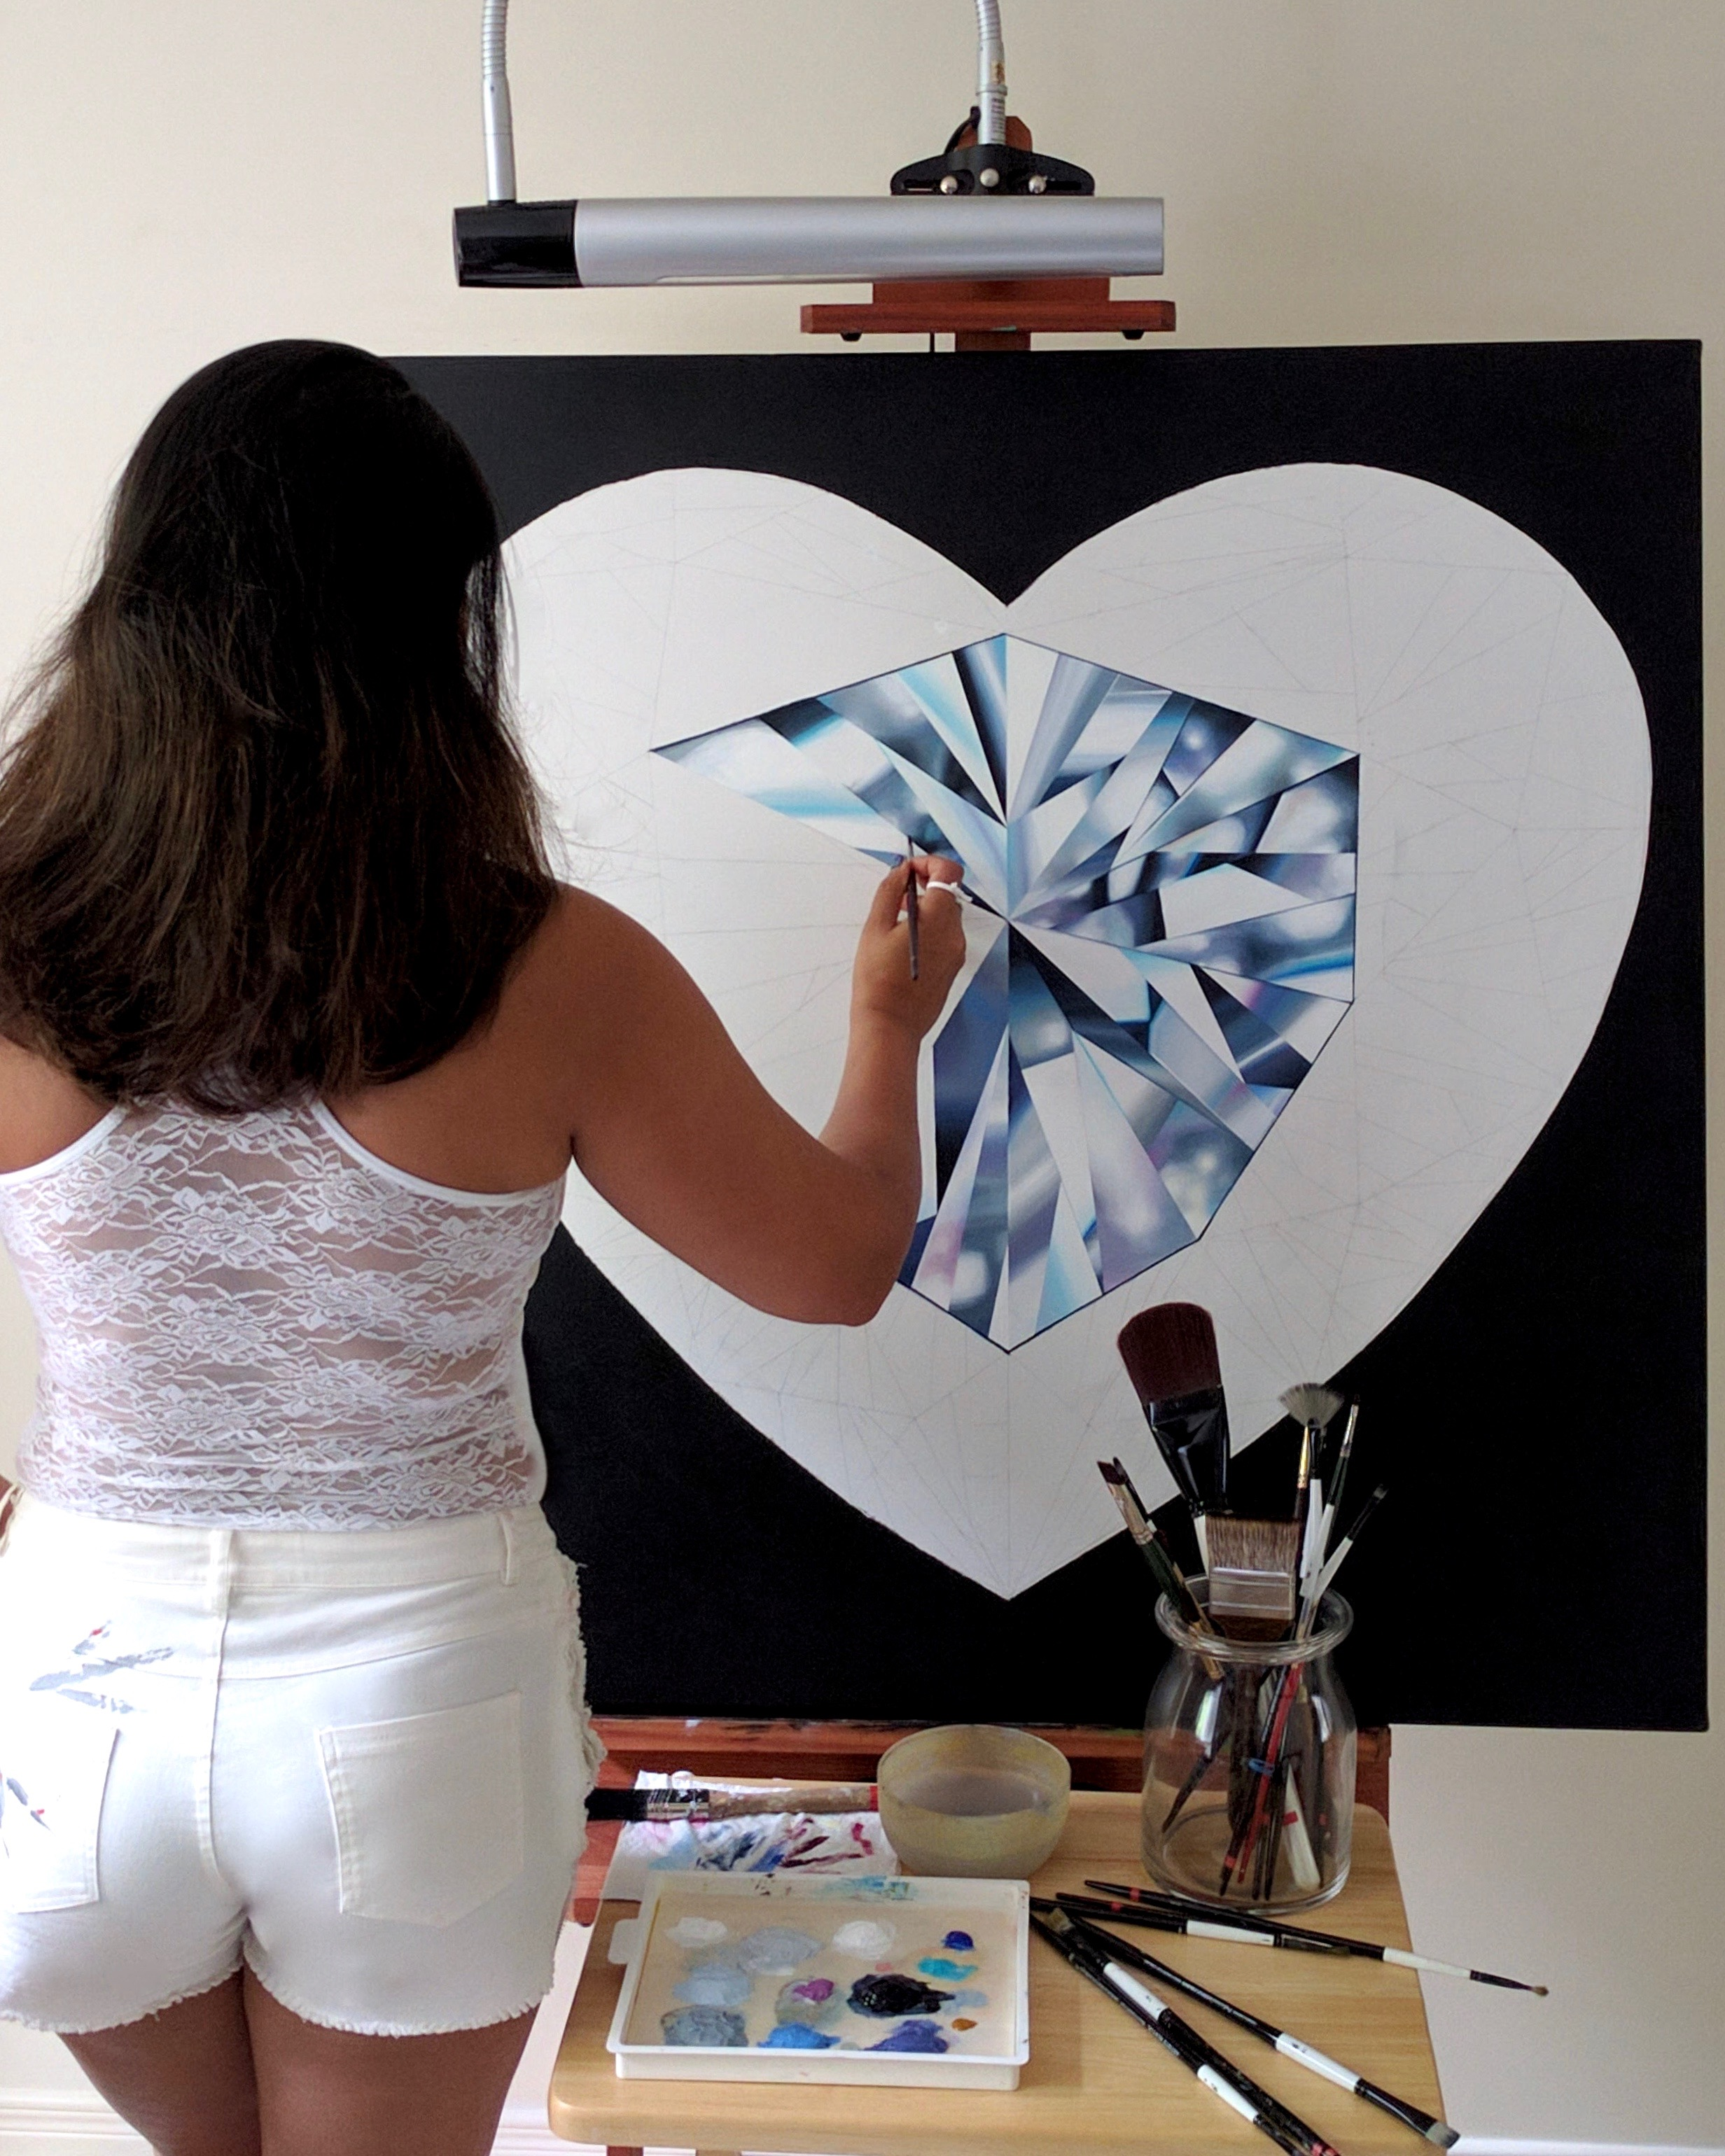 Making of the 'Pure Heart' diamond painting. ©Reena Ahluwalia